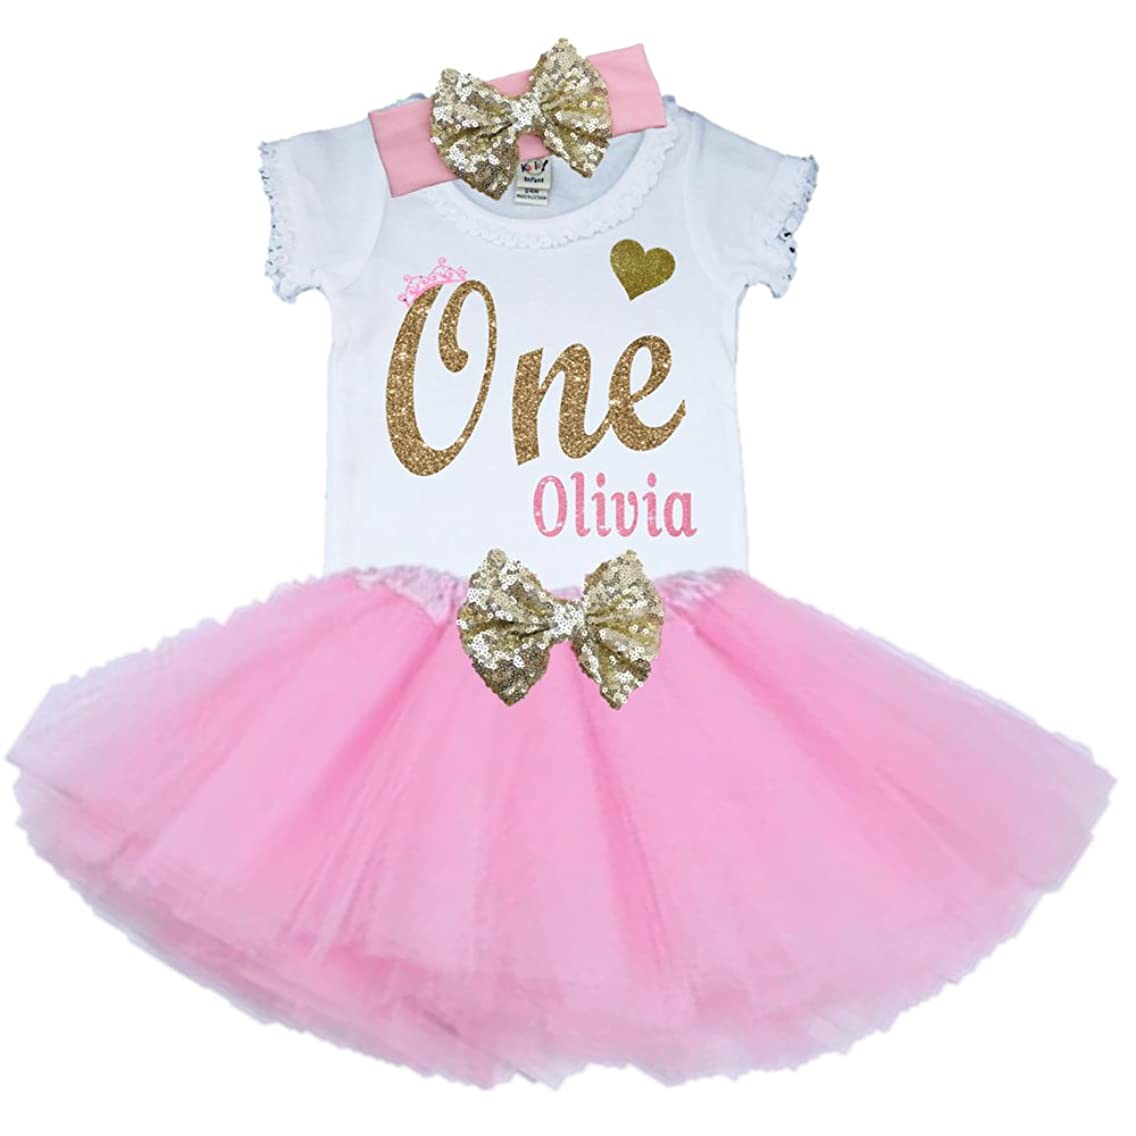 Bella Fashion Kidz Girl First Birthday Tutu Outfit Pink and Gold Personalized 1st Glitter Dress Set